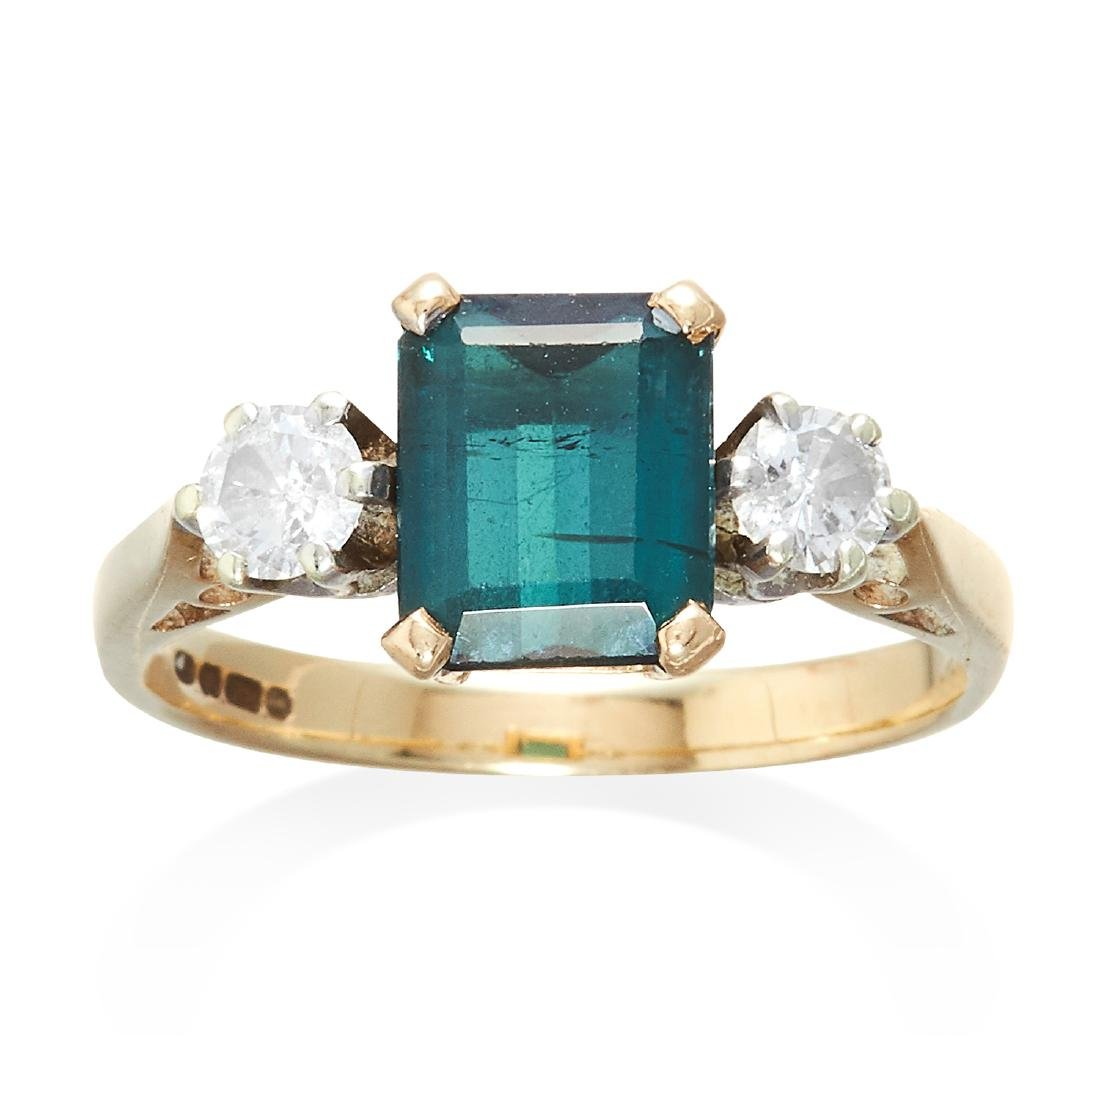 A TOURMALINE AND DIAMOND RING 9ct yellow gold, set with